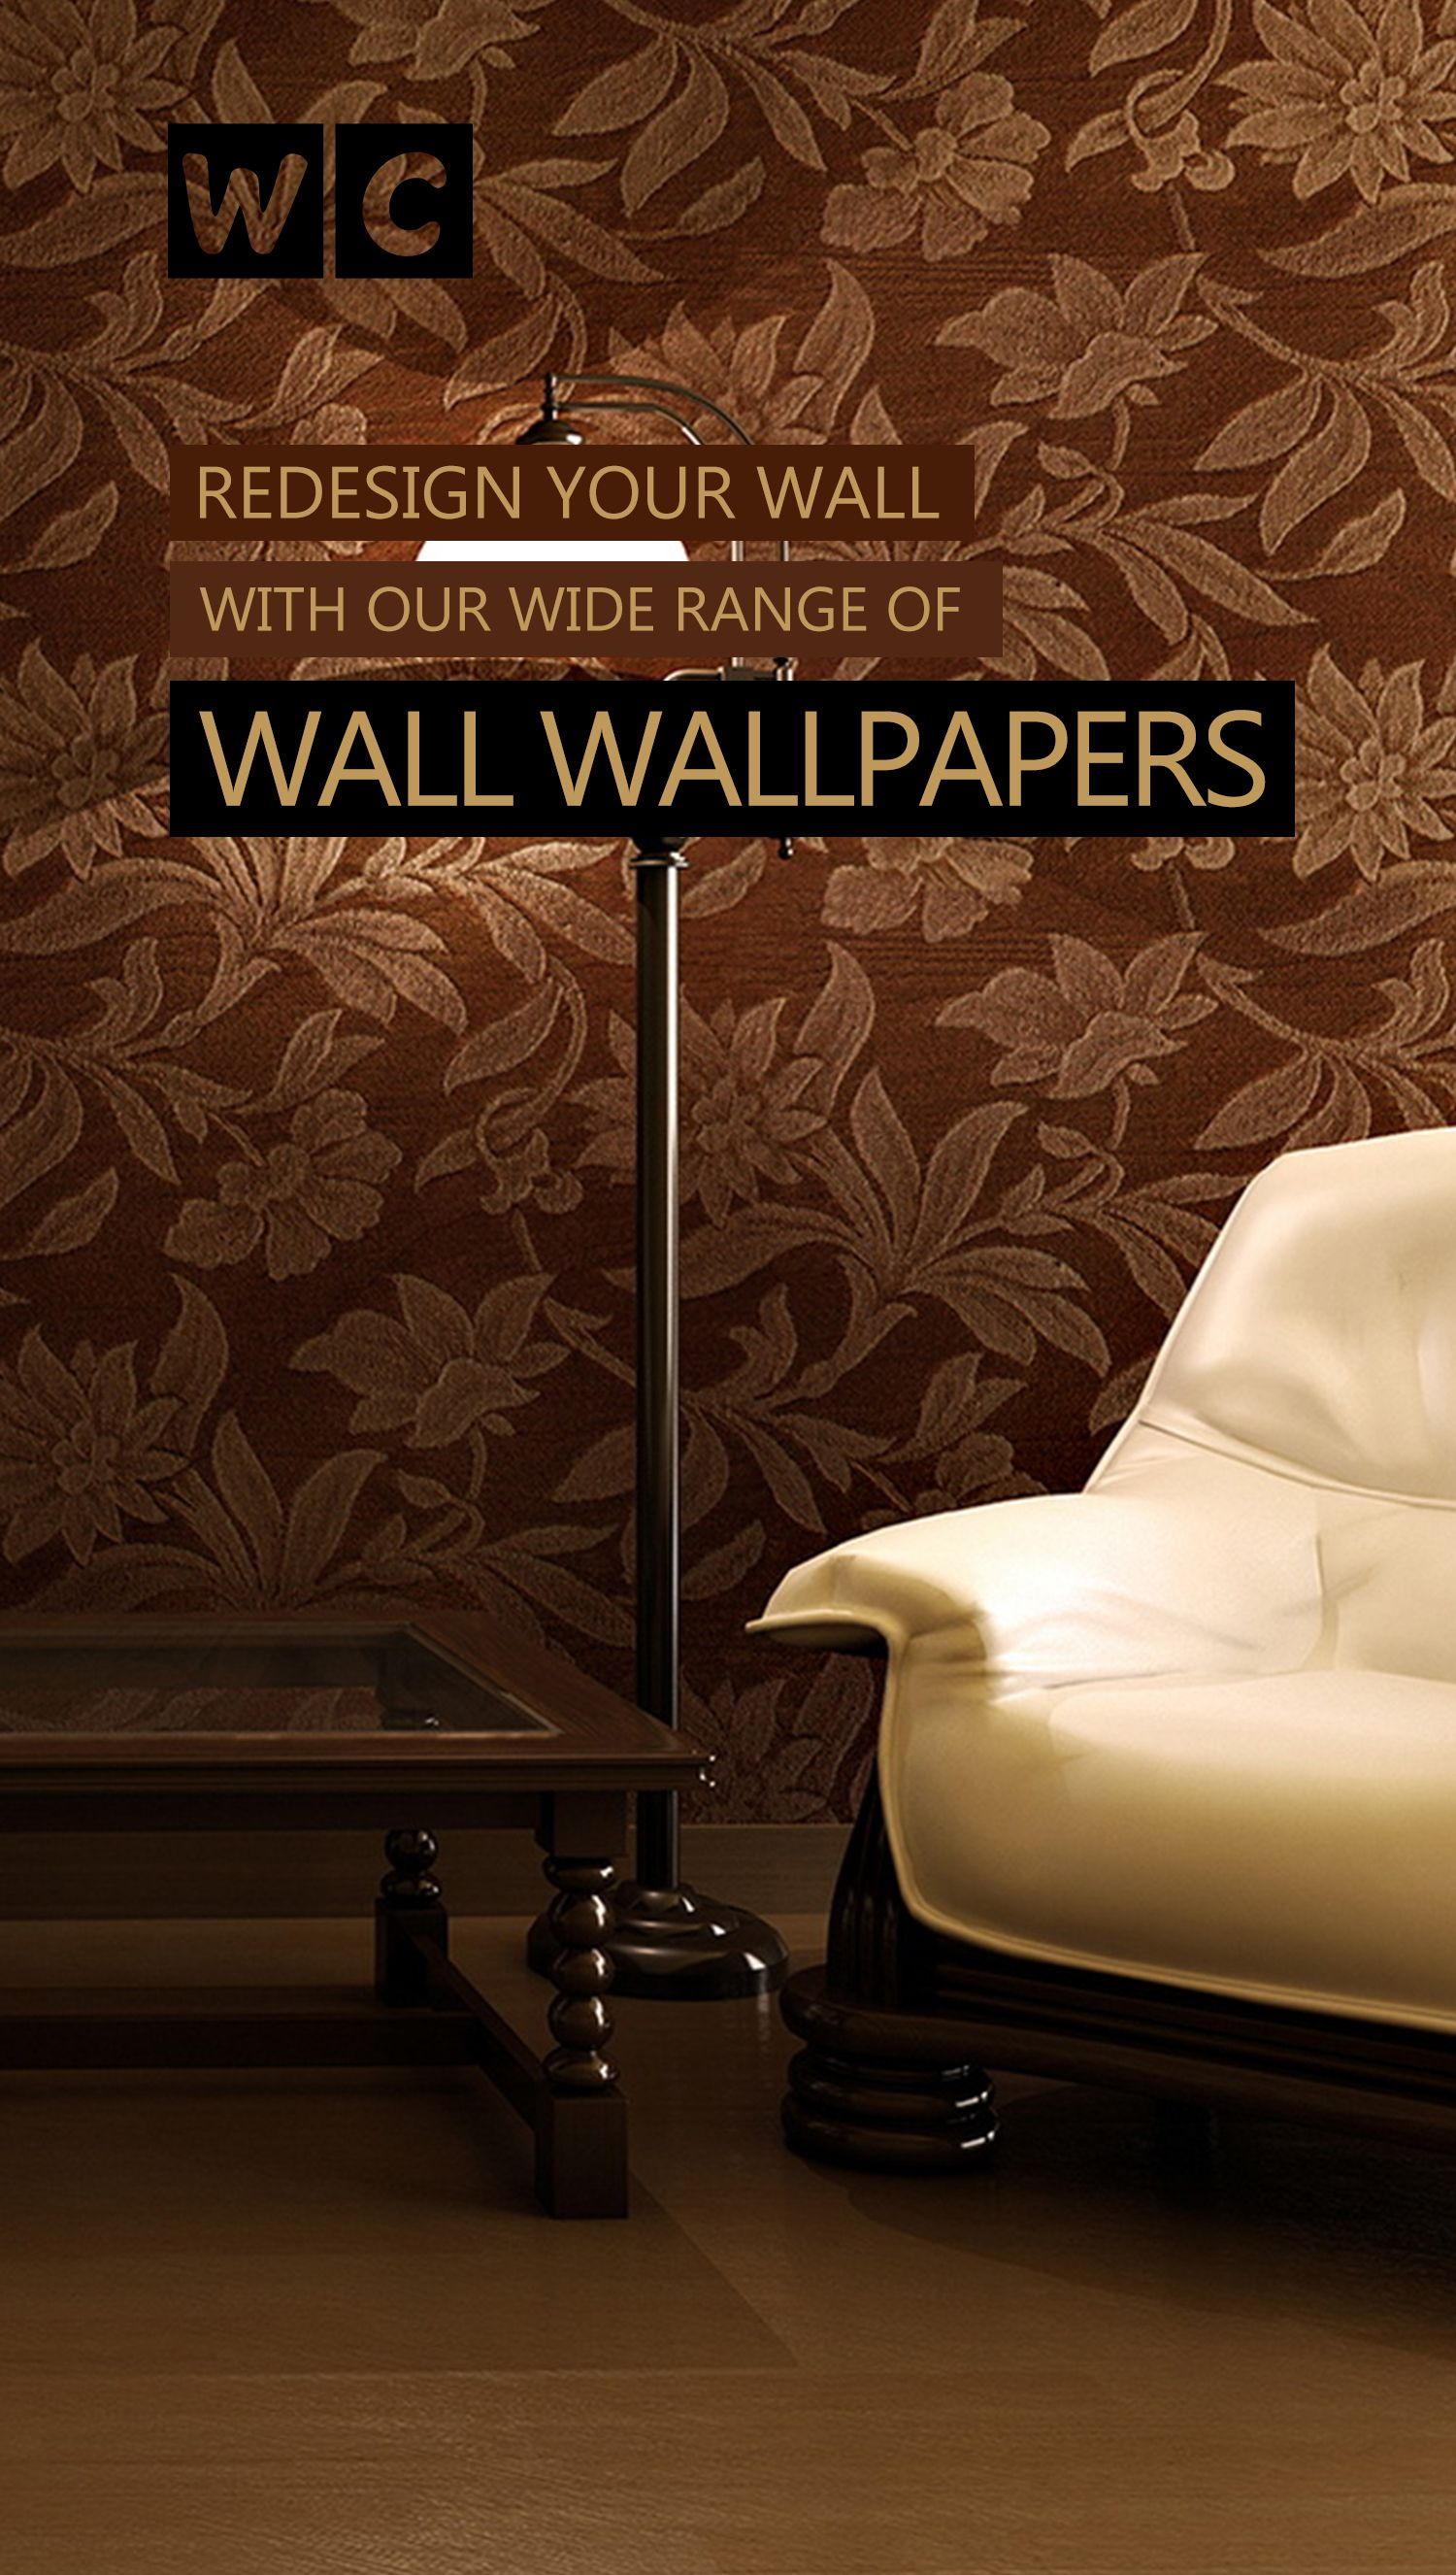 Starting Price Of Wall Wallpapers Is Rs 28 Per Square Feet For More Information Please Whatsapp Or Call On 9785888881 Wall Wallpaper Wallpaper Pvc Panels